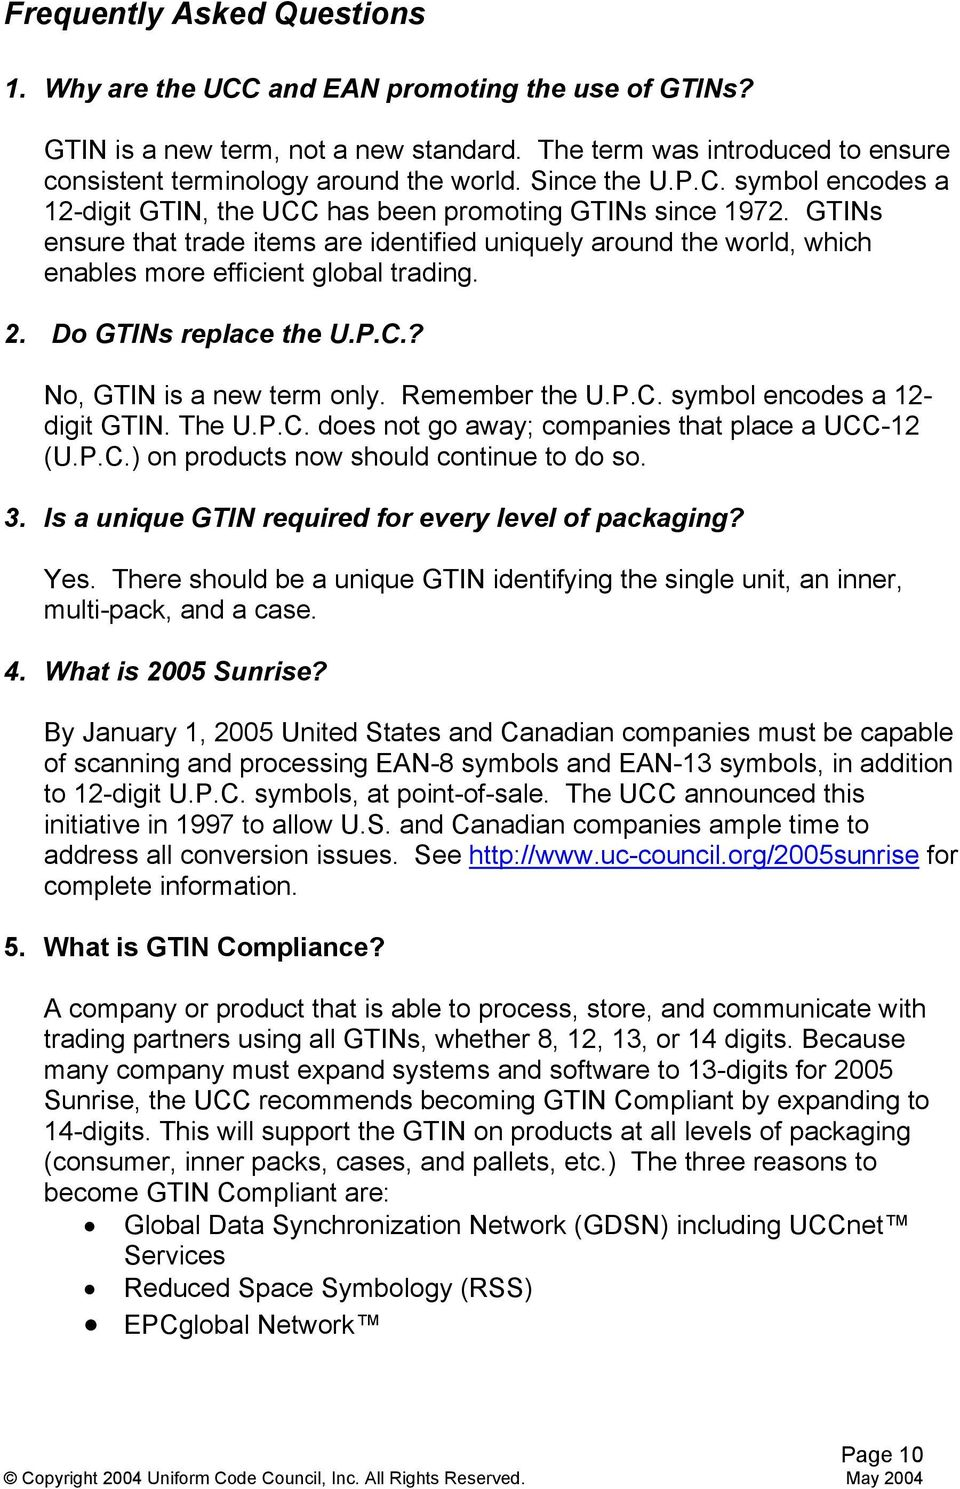 GTINs ensure that trade items are identified uniquely around the world, which enables more efficient global trading. 2. Do GTINs replace the U.P.C.? No, GTIN is a new term only. Remember the U.P.C. symbol encodes a 12- digit GTIN.